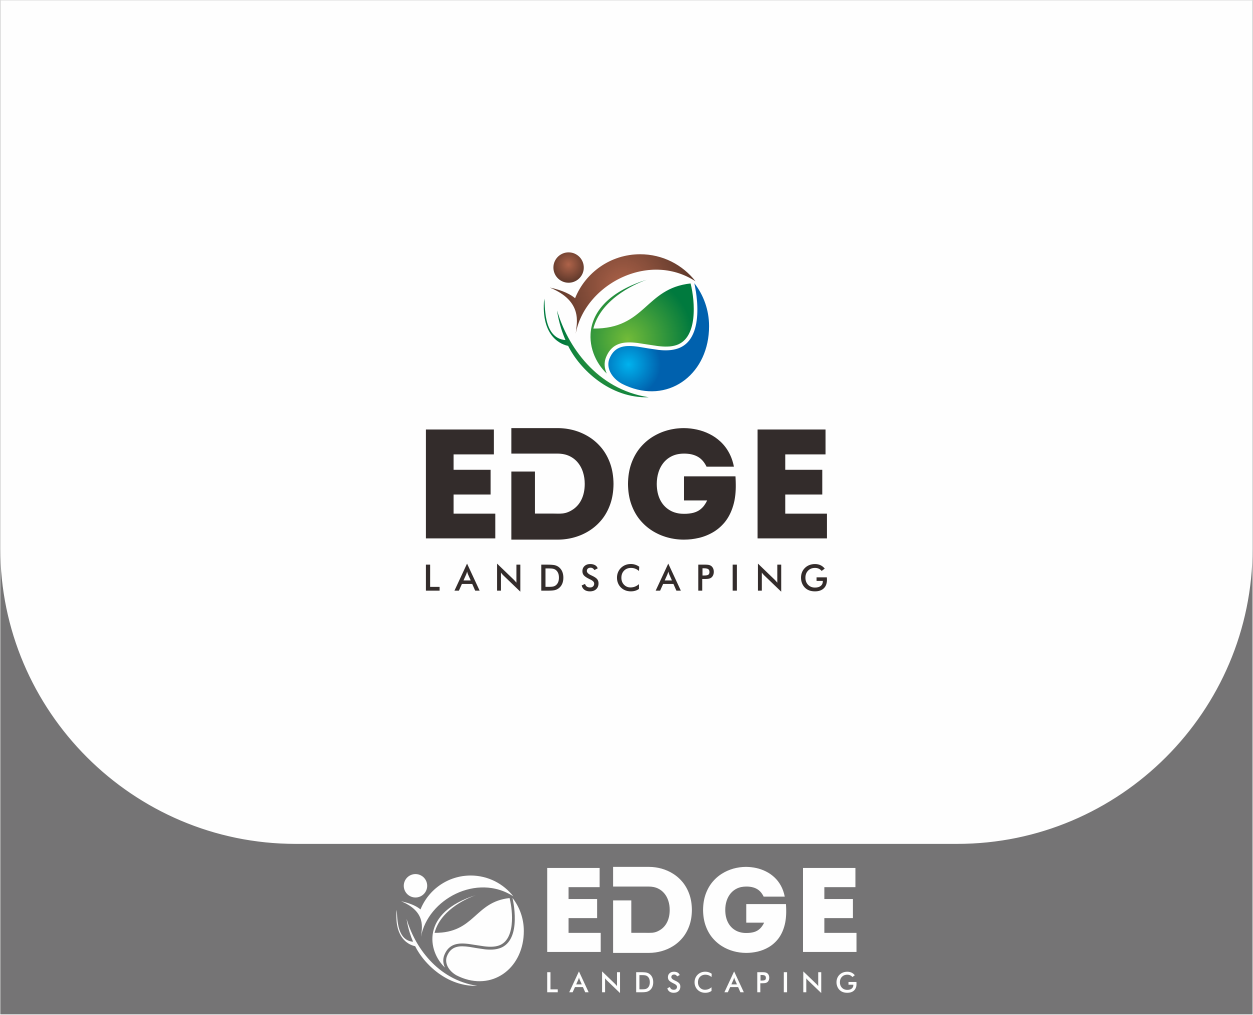 Logo Design by Armada Jamaluddin - Entry No. 257 in the Logo Design Contest Inspiring Logo Design for Edge Landscaping.